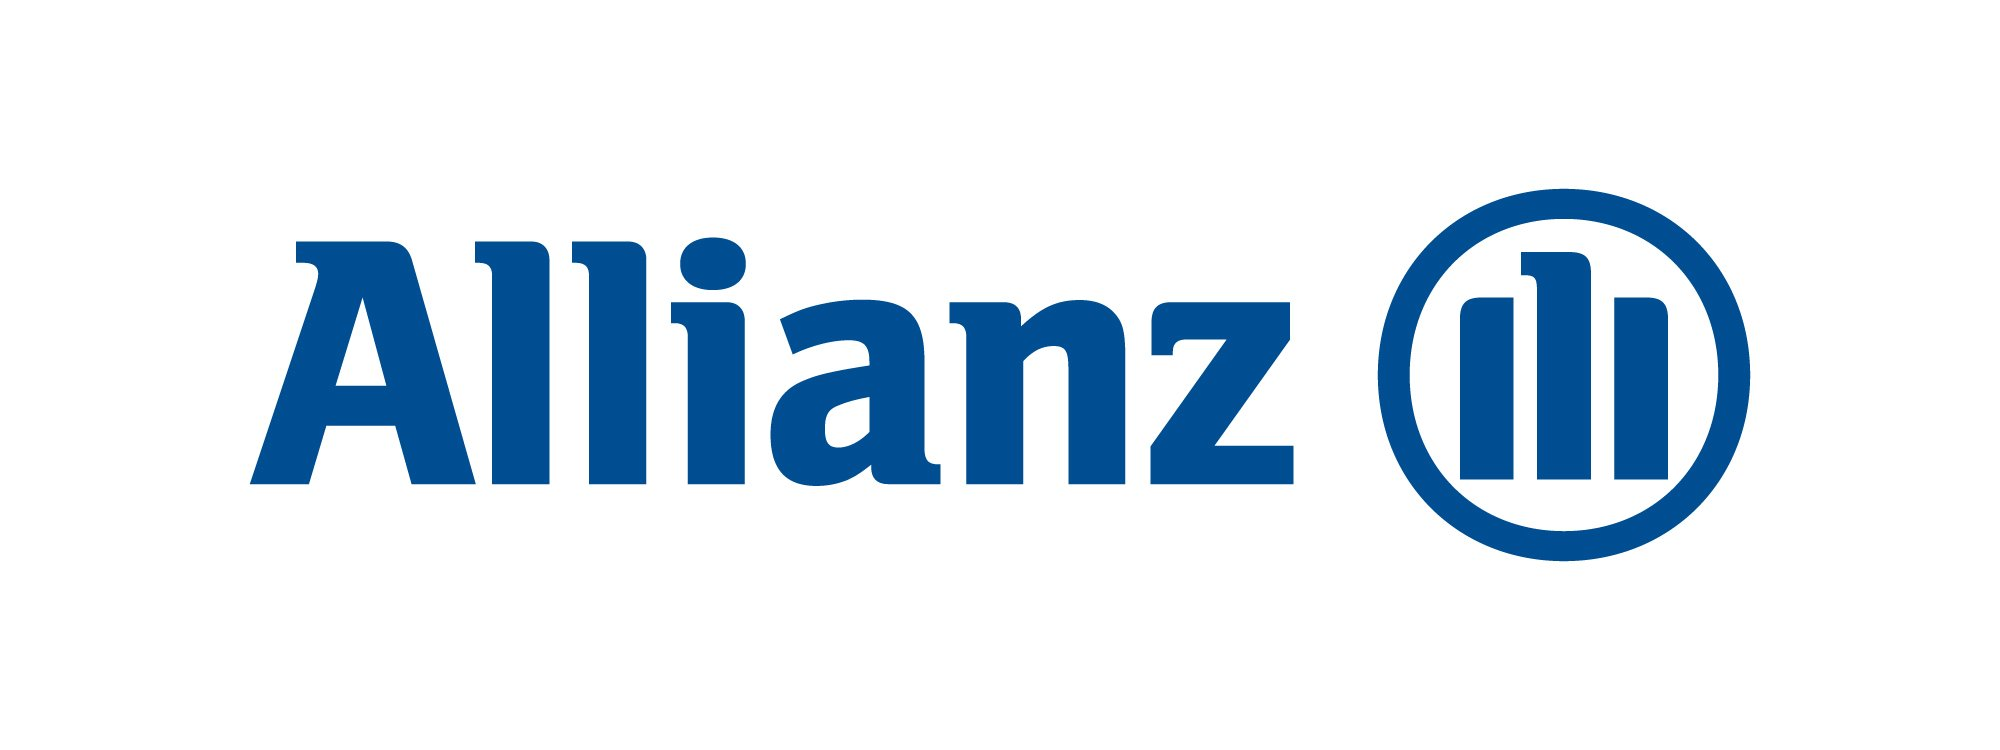 mutua-seguro medico Allianz logo